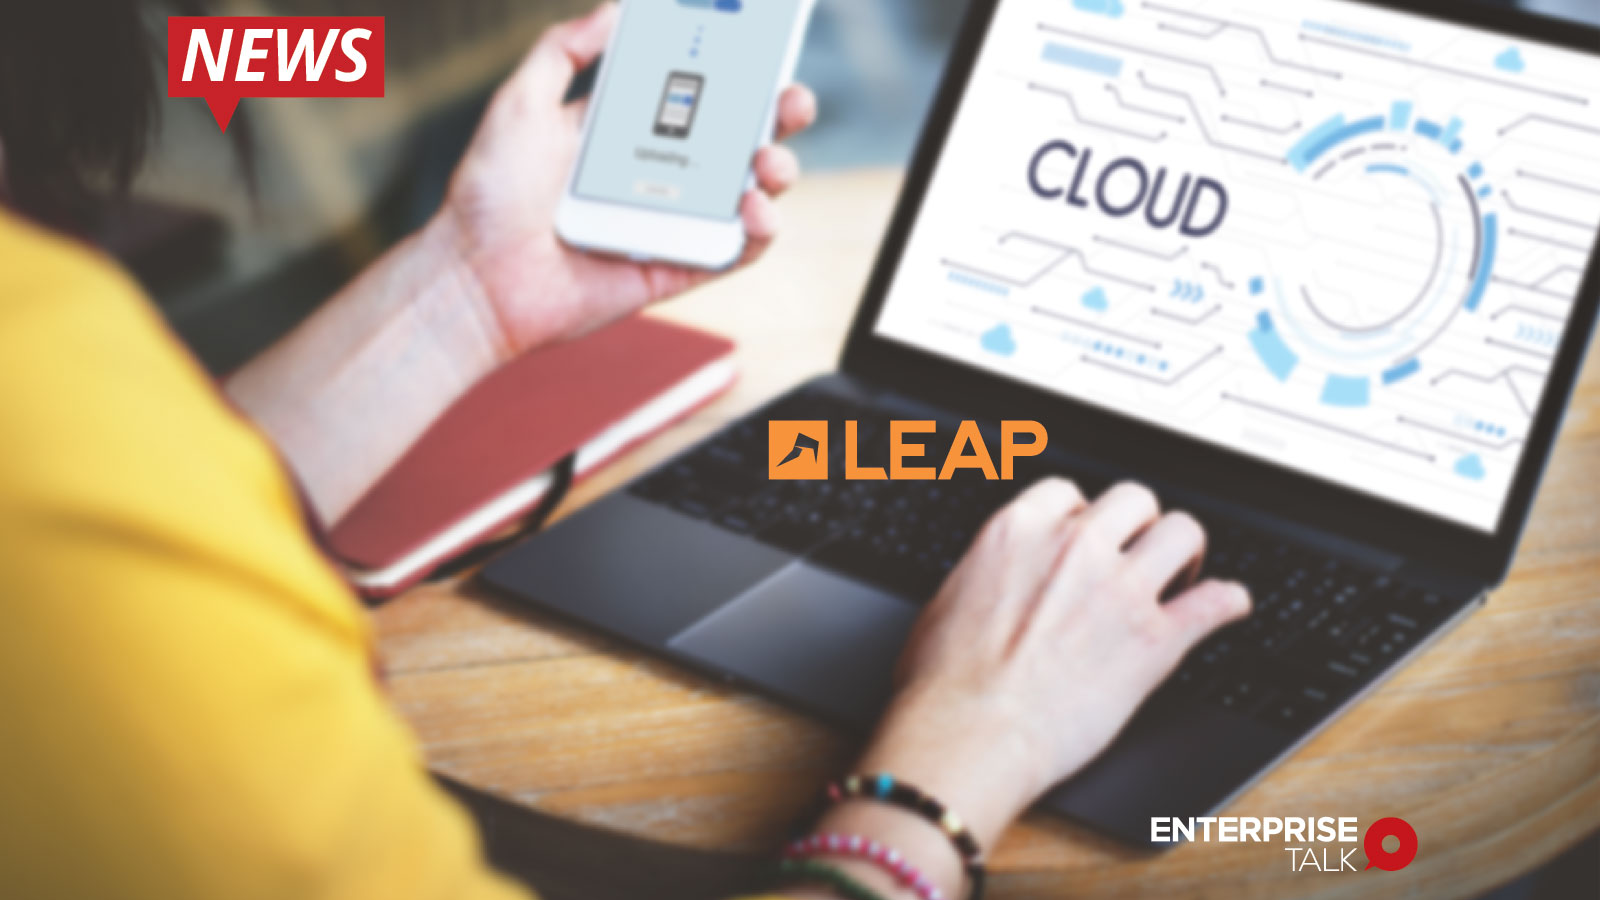 LEAP, Remote Purchase, Installation, Cloud Software, Law Firm, COVID-19